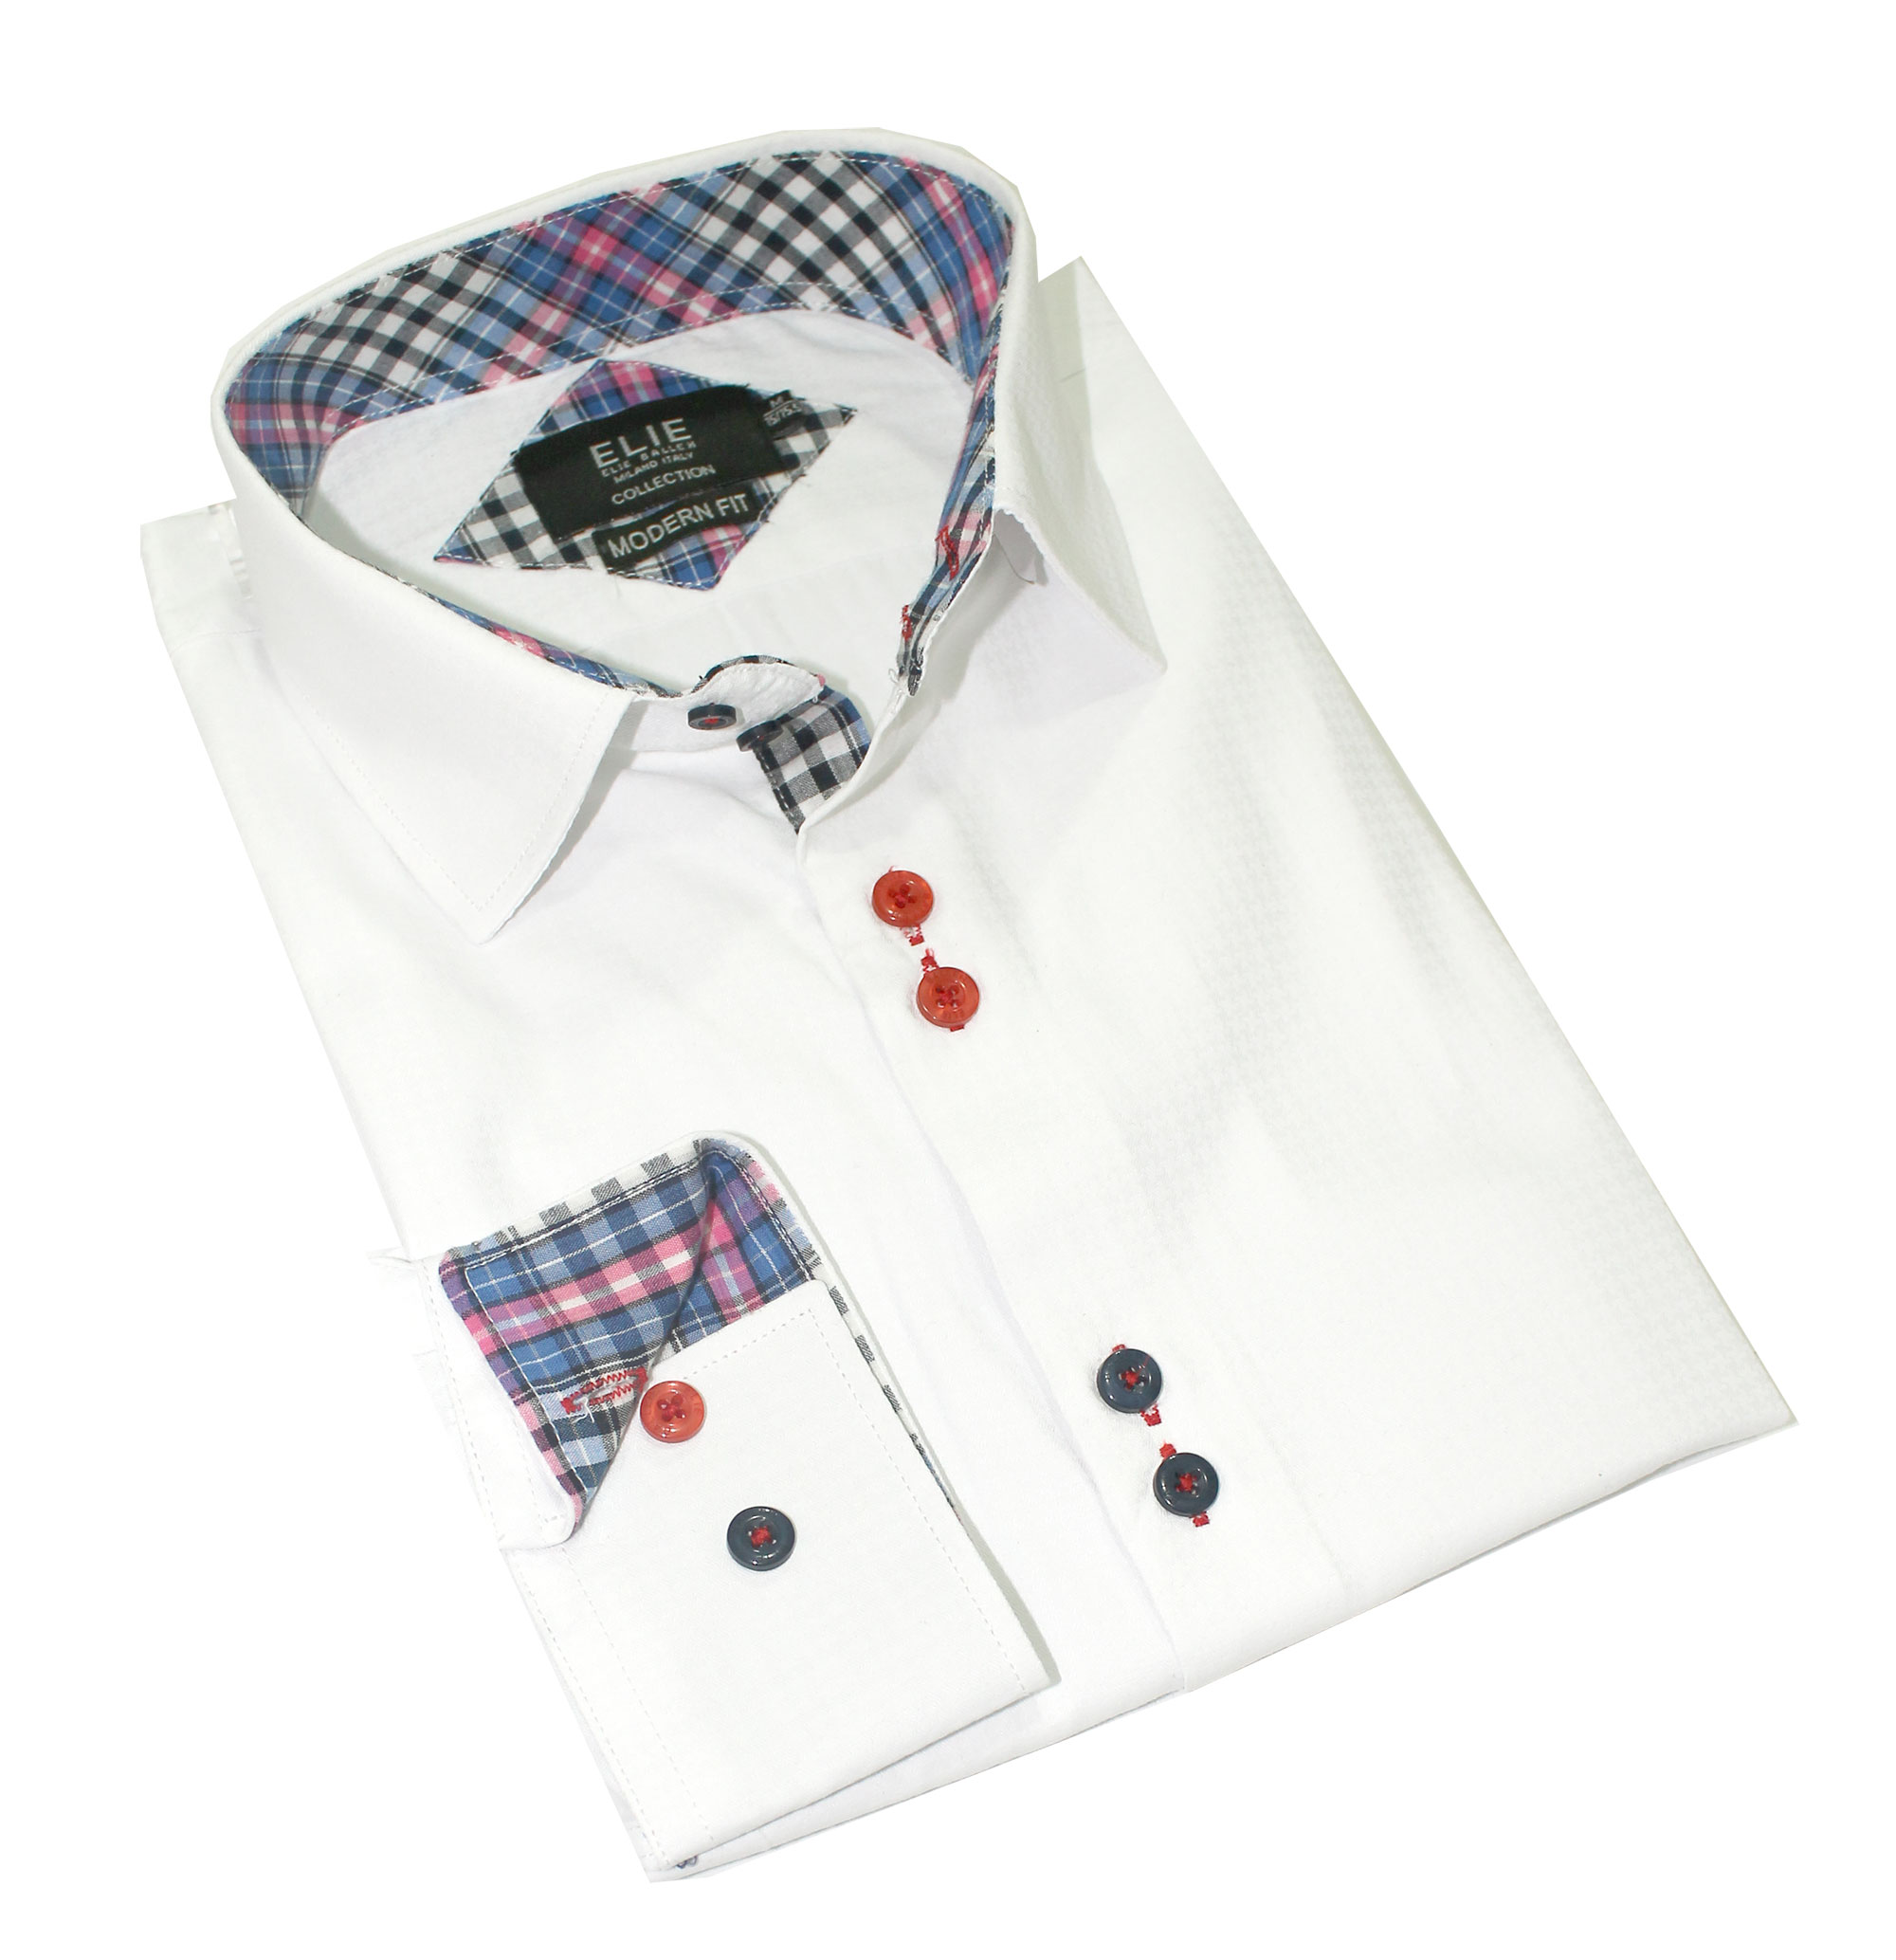 Solid Textured premium Boys Shirts / Button Down CEBSH300B